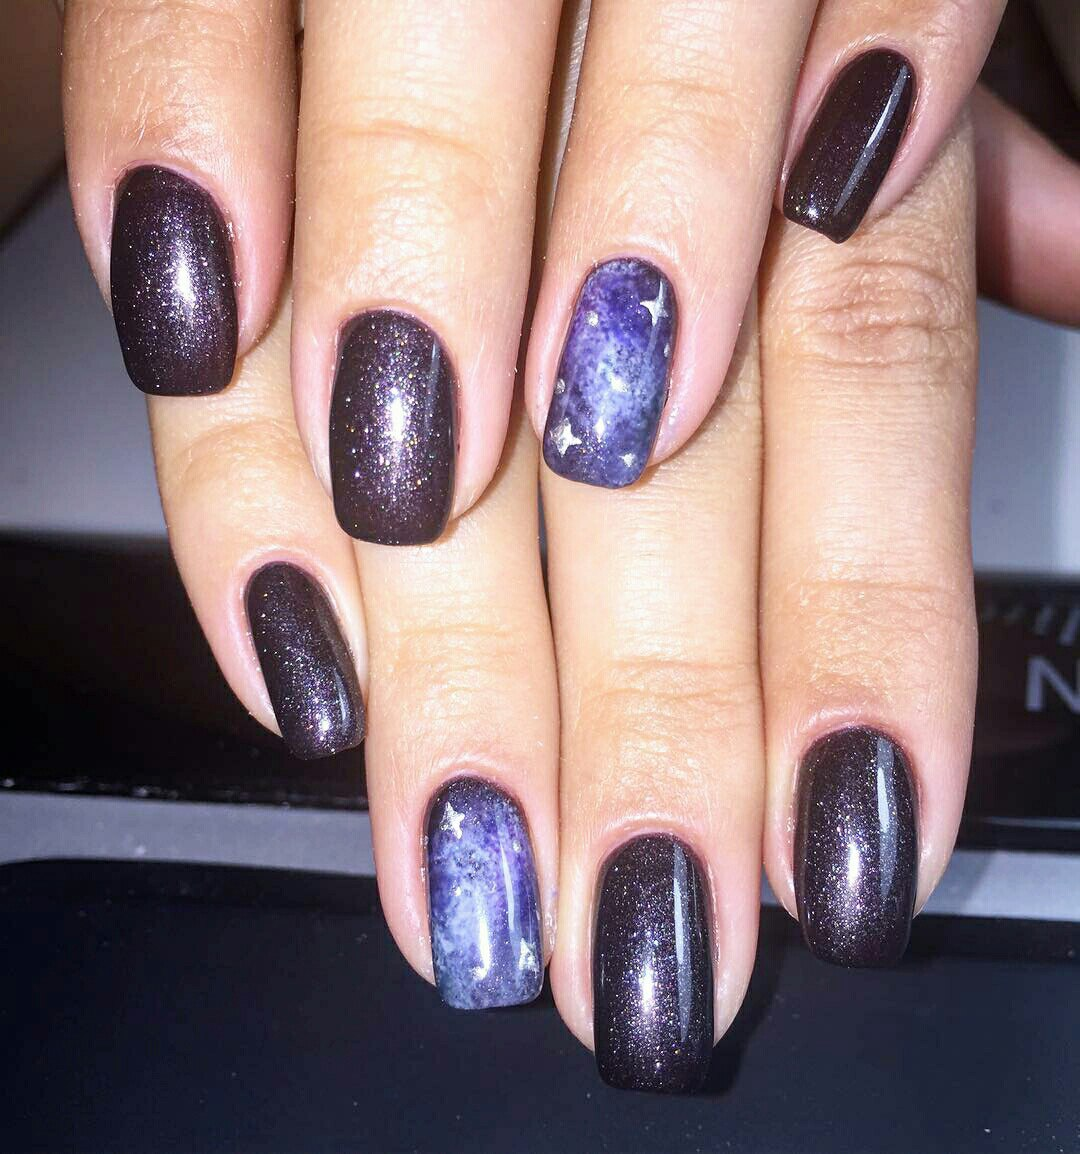 Purple galaxy nails with tutorial feat zoya payton space nails how to do galaxy nails art best design with tutorial ladylife how to make galaxy prinsesfo Gallery